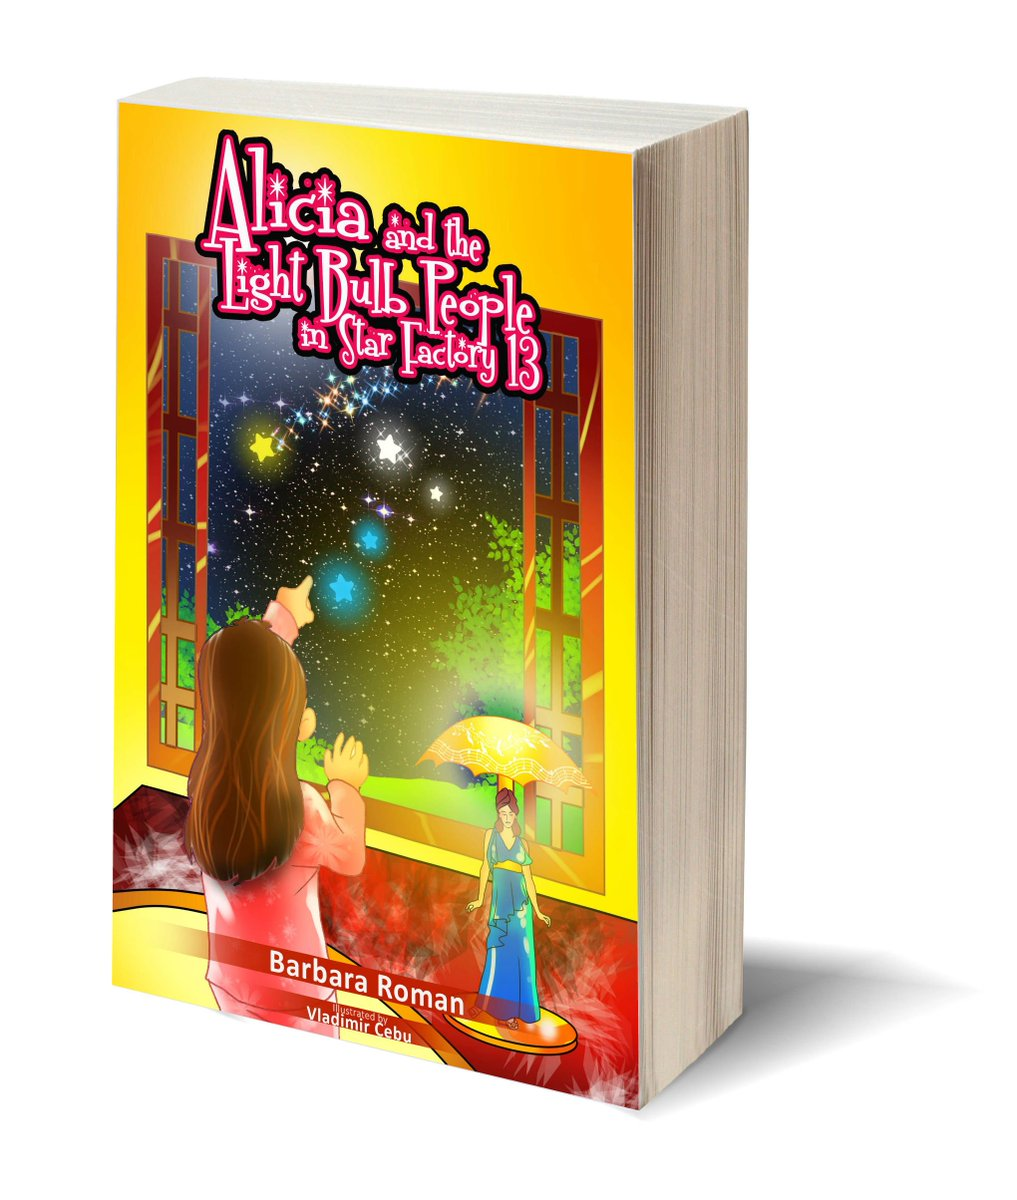 ★Alicia and the Light Bulb People in Star Factory 13★ BMoonSinger1 ✔http://wp.me/P5rIsN-35u  ASMSG #pizzazzbookpromotions #childrensbooks